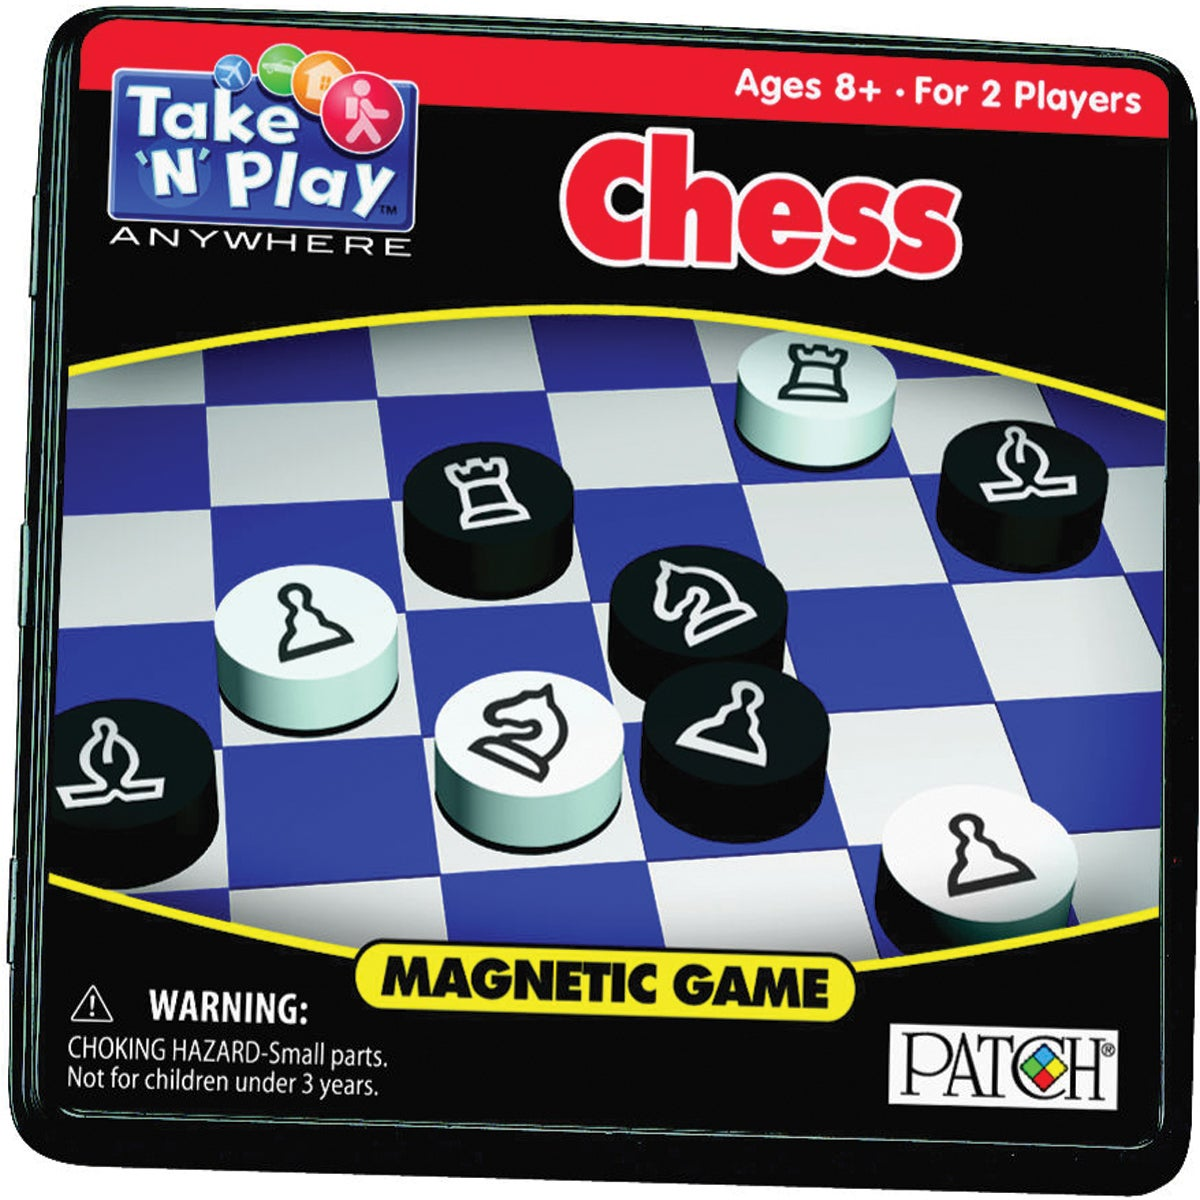 Patch Products Chess Game